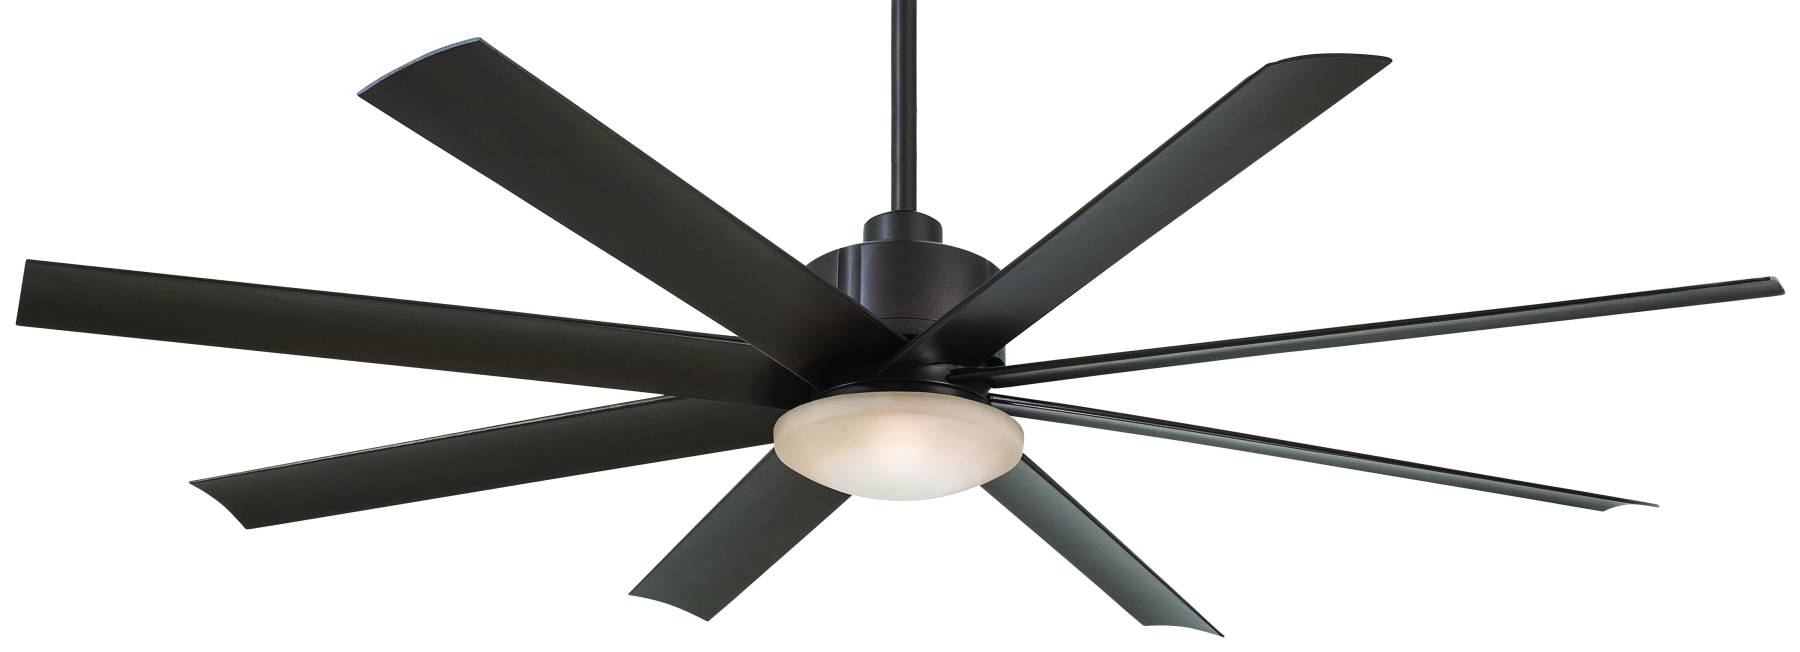 72 Inch Outdoor Ceiling Fans Within Most Recently Released 72 Inch Ceiling Fan With Light Modern Ceiling Design Outdoor Wood (View 5 of 20)